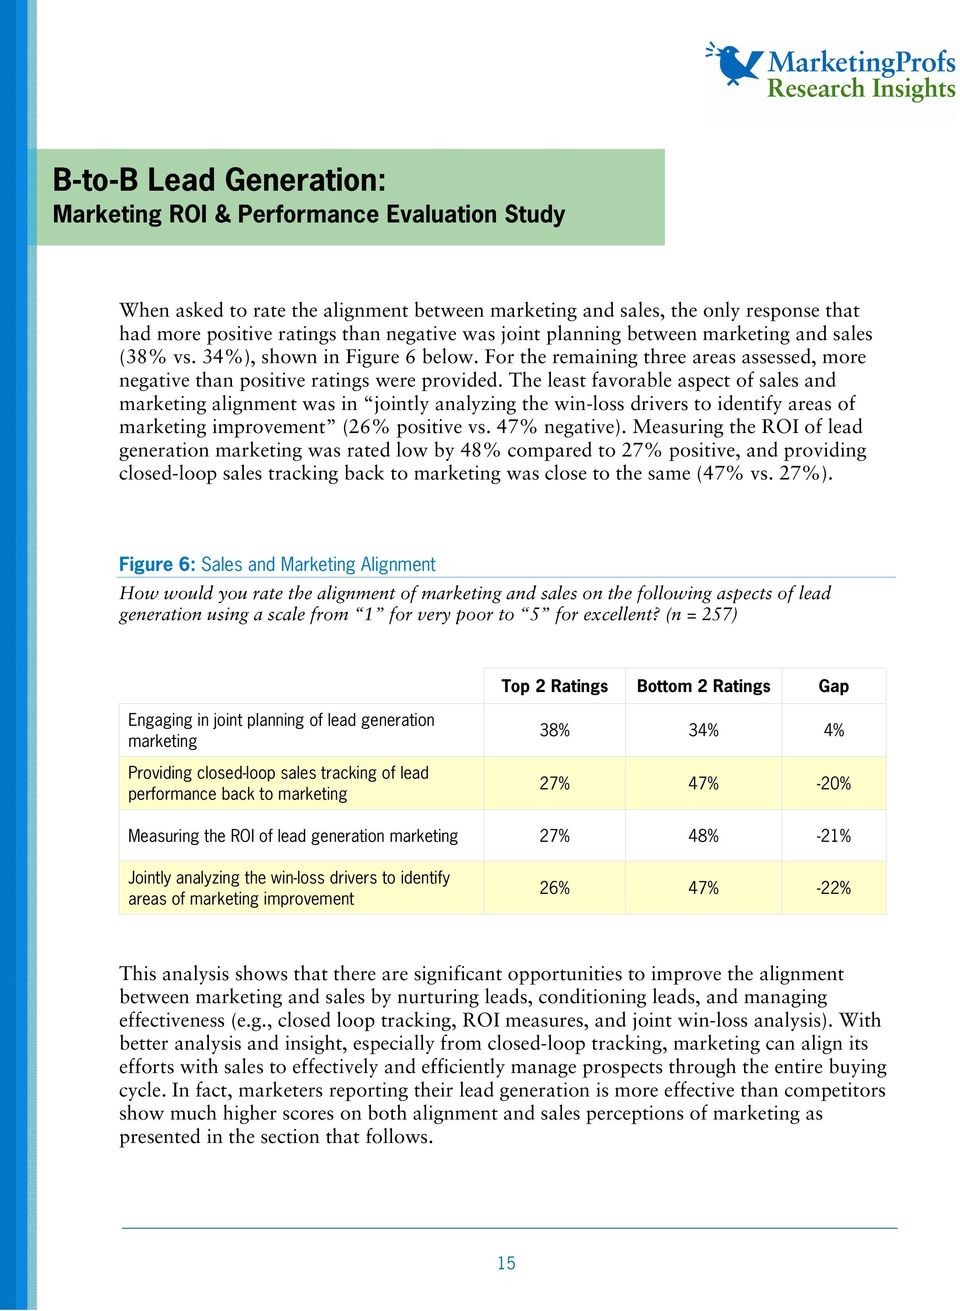 The least favorable aspect of sales and marketing alignment was in jointly analyzing the win-loss drivers to identify areas of marketing improvement (26% positive vs. 47% negative).